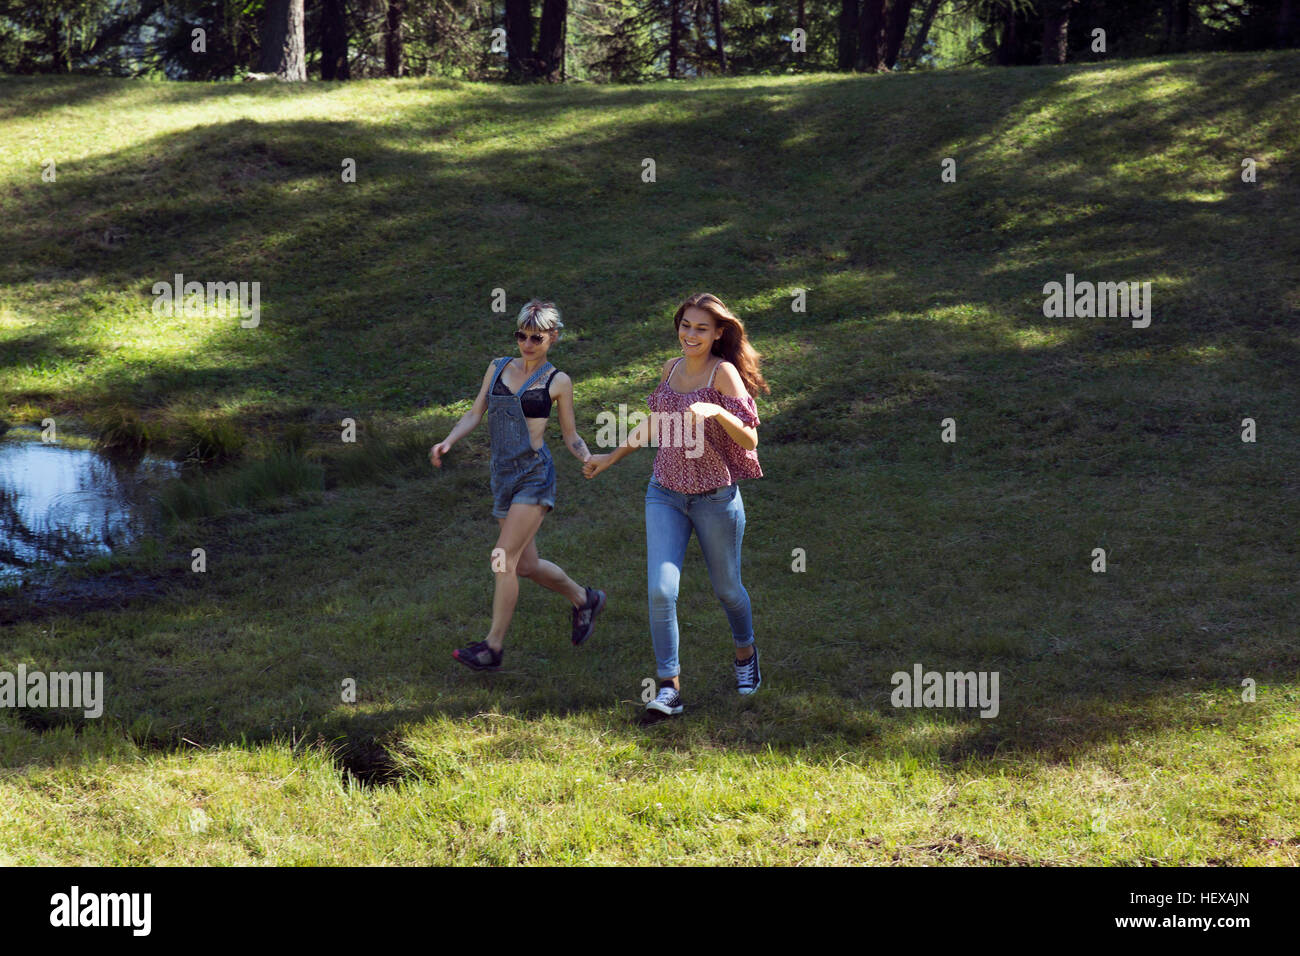 Two female friends running in forest glade, Sattelbergalm, Tyrol, Austria - Stock Image